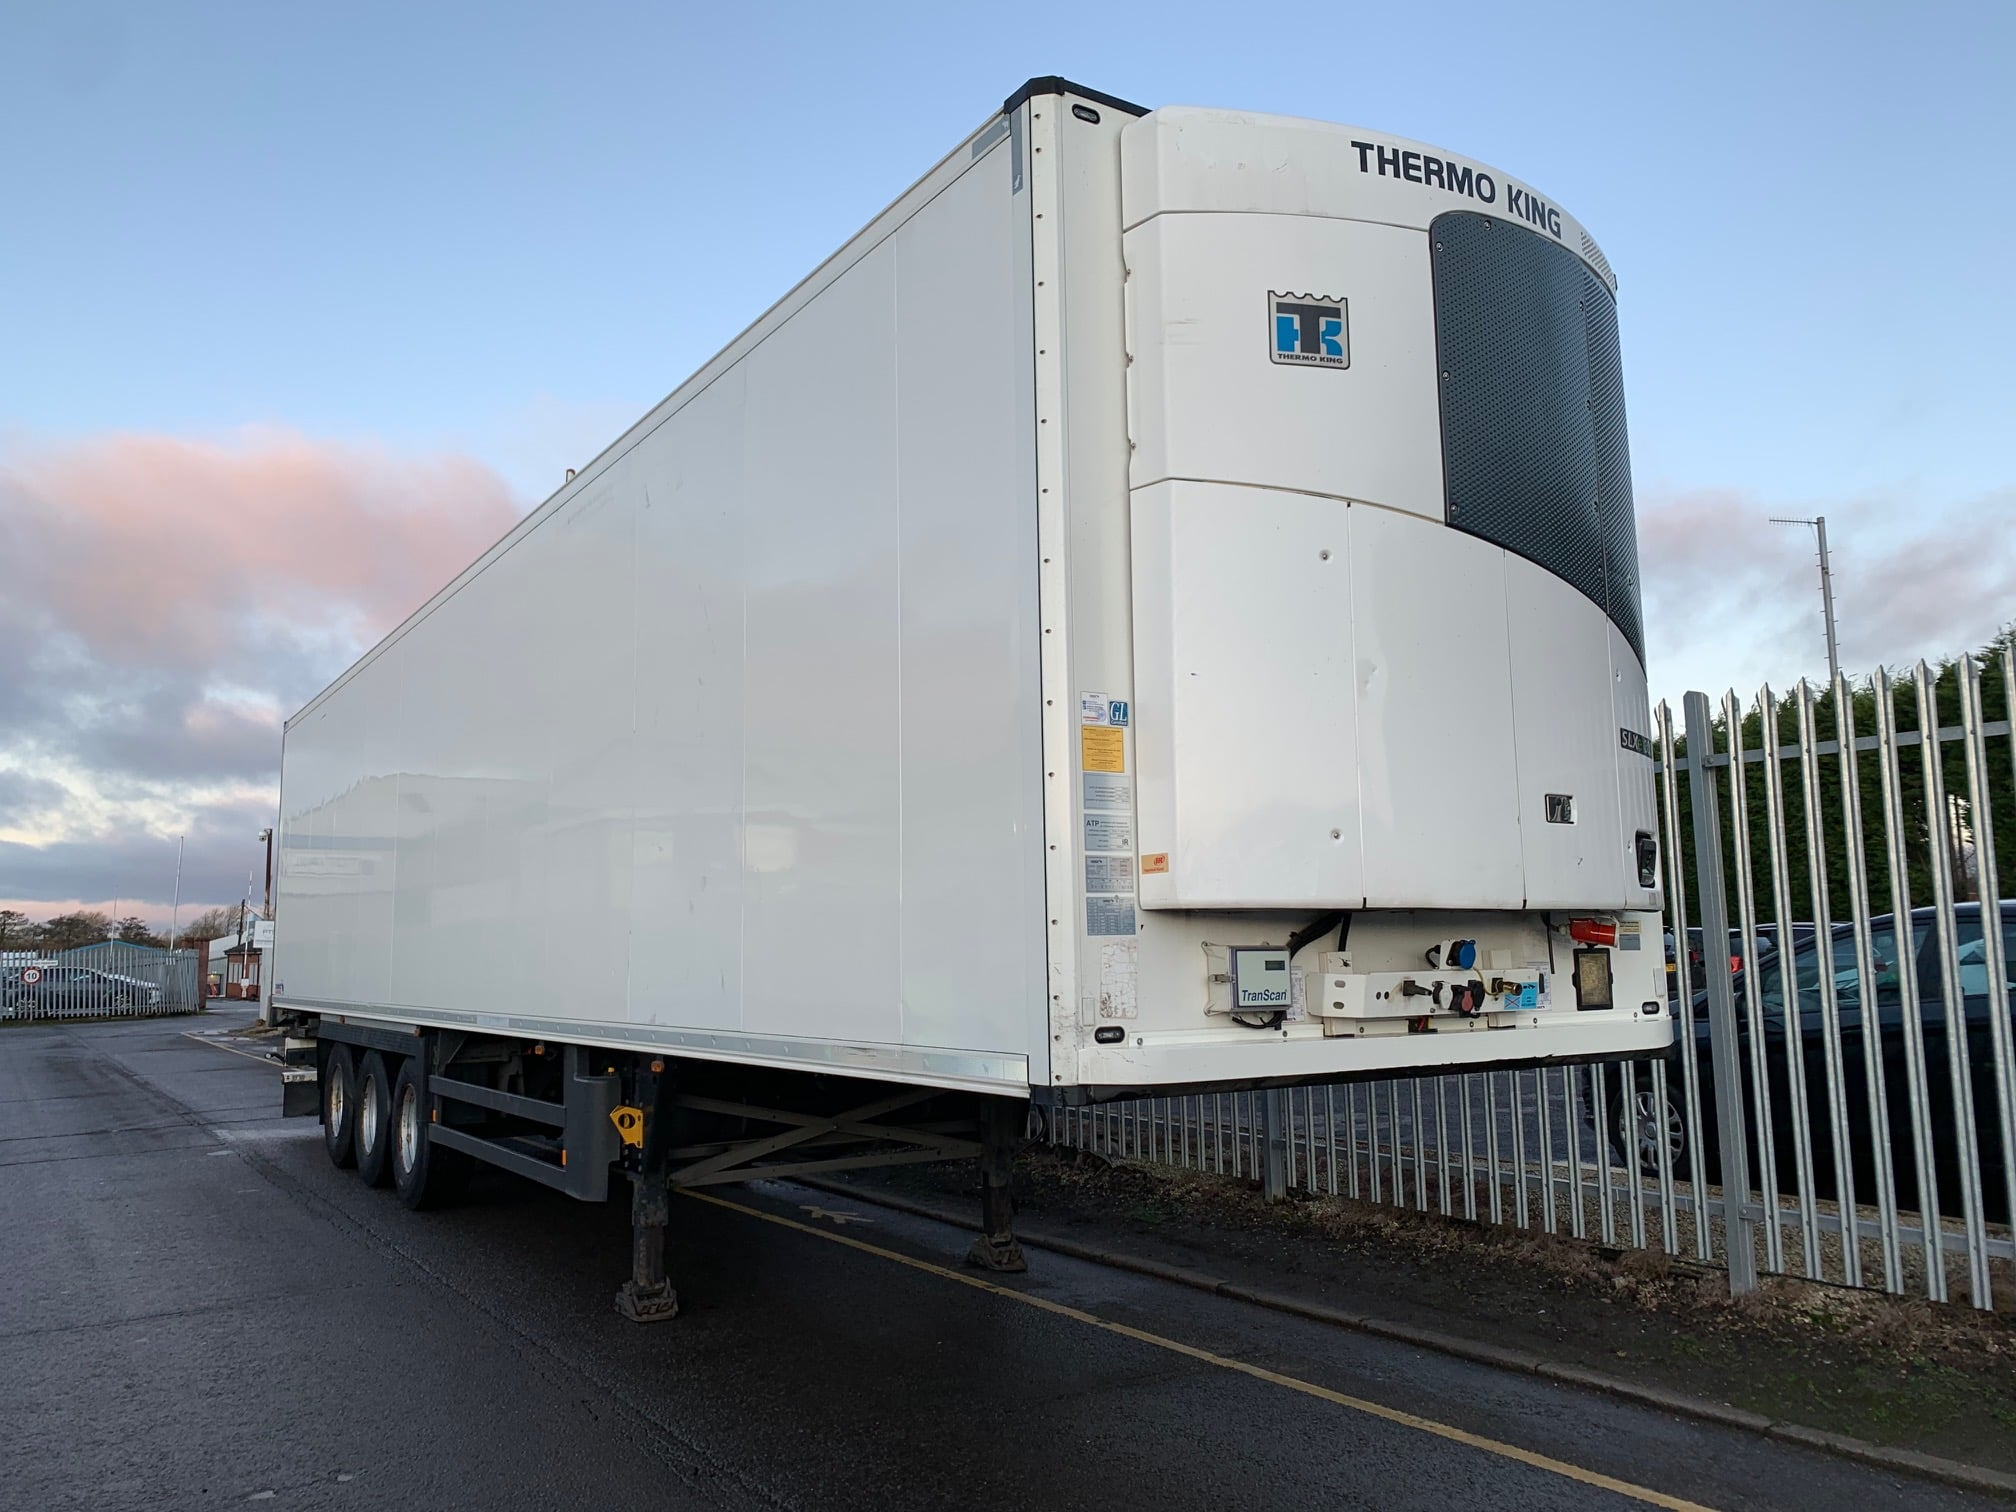 2015 Schmitz Single Temp Fridge. Thermoking SLXe 300 Engine, 2.59m Internal Height, SAF Axles, Drum Brakes, Aluminium Floor, Barn Doors, Load Lock Rails, Raise Lower Valve Facility.